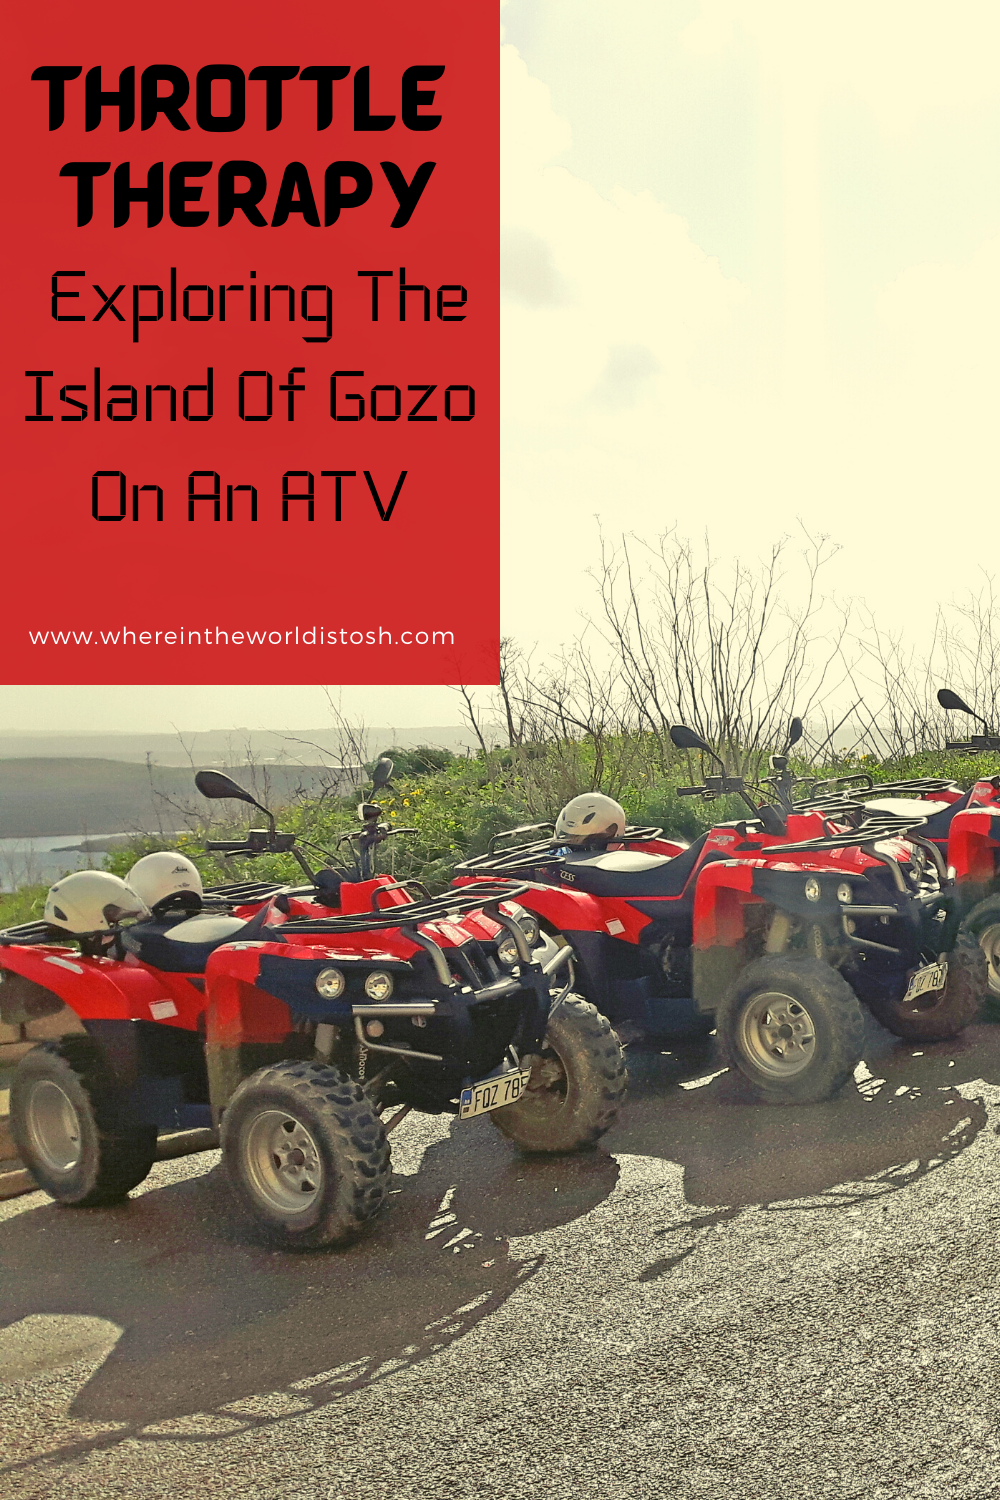 Throttle Therapy - Exploring The Island Of Gozo On An ATV